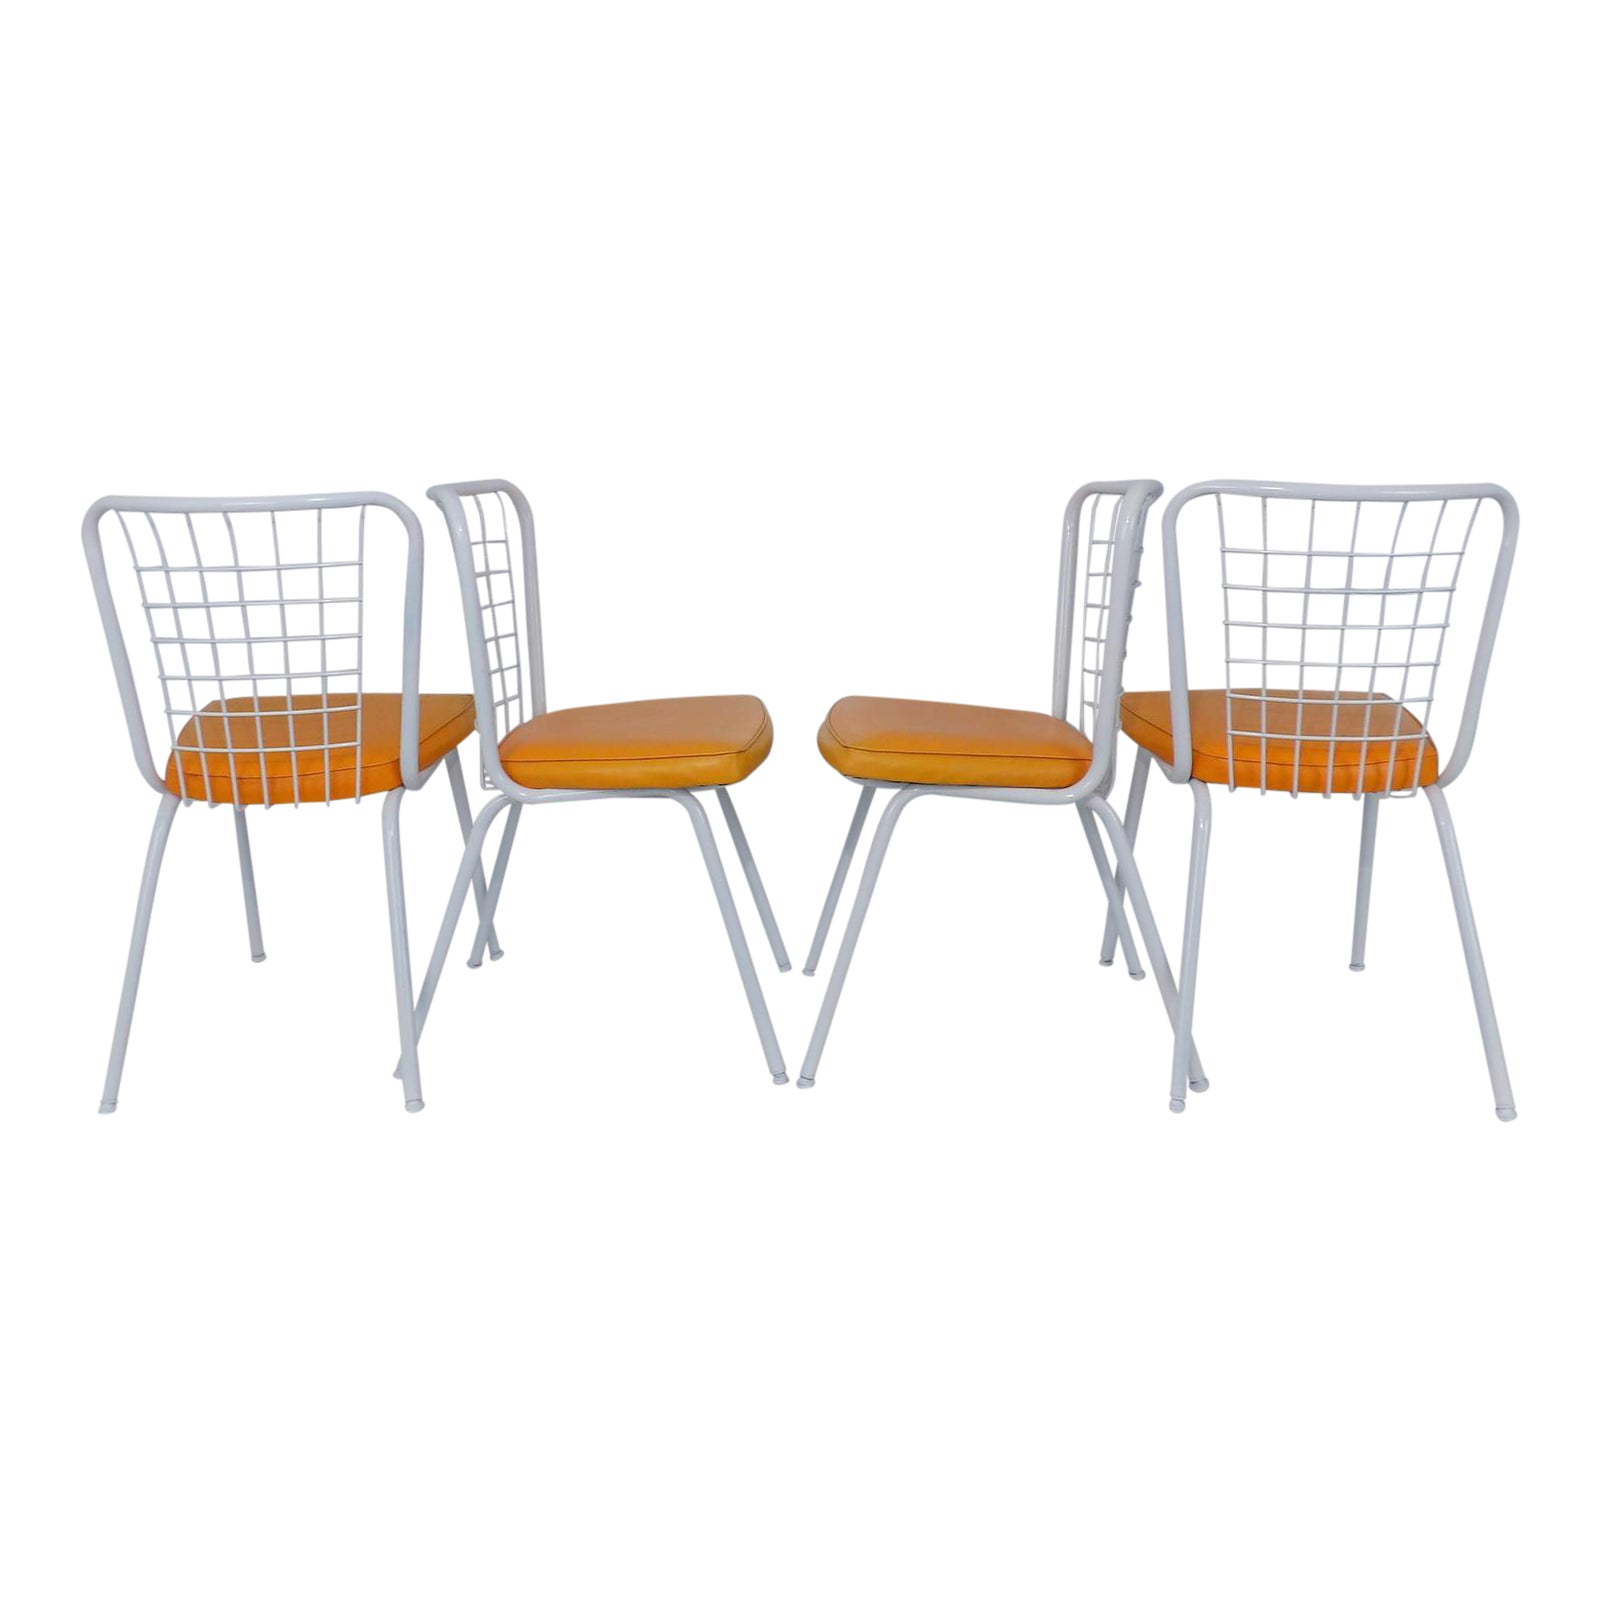 Howell mid century modern metal wire back dining chairs set of 4 chairish